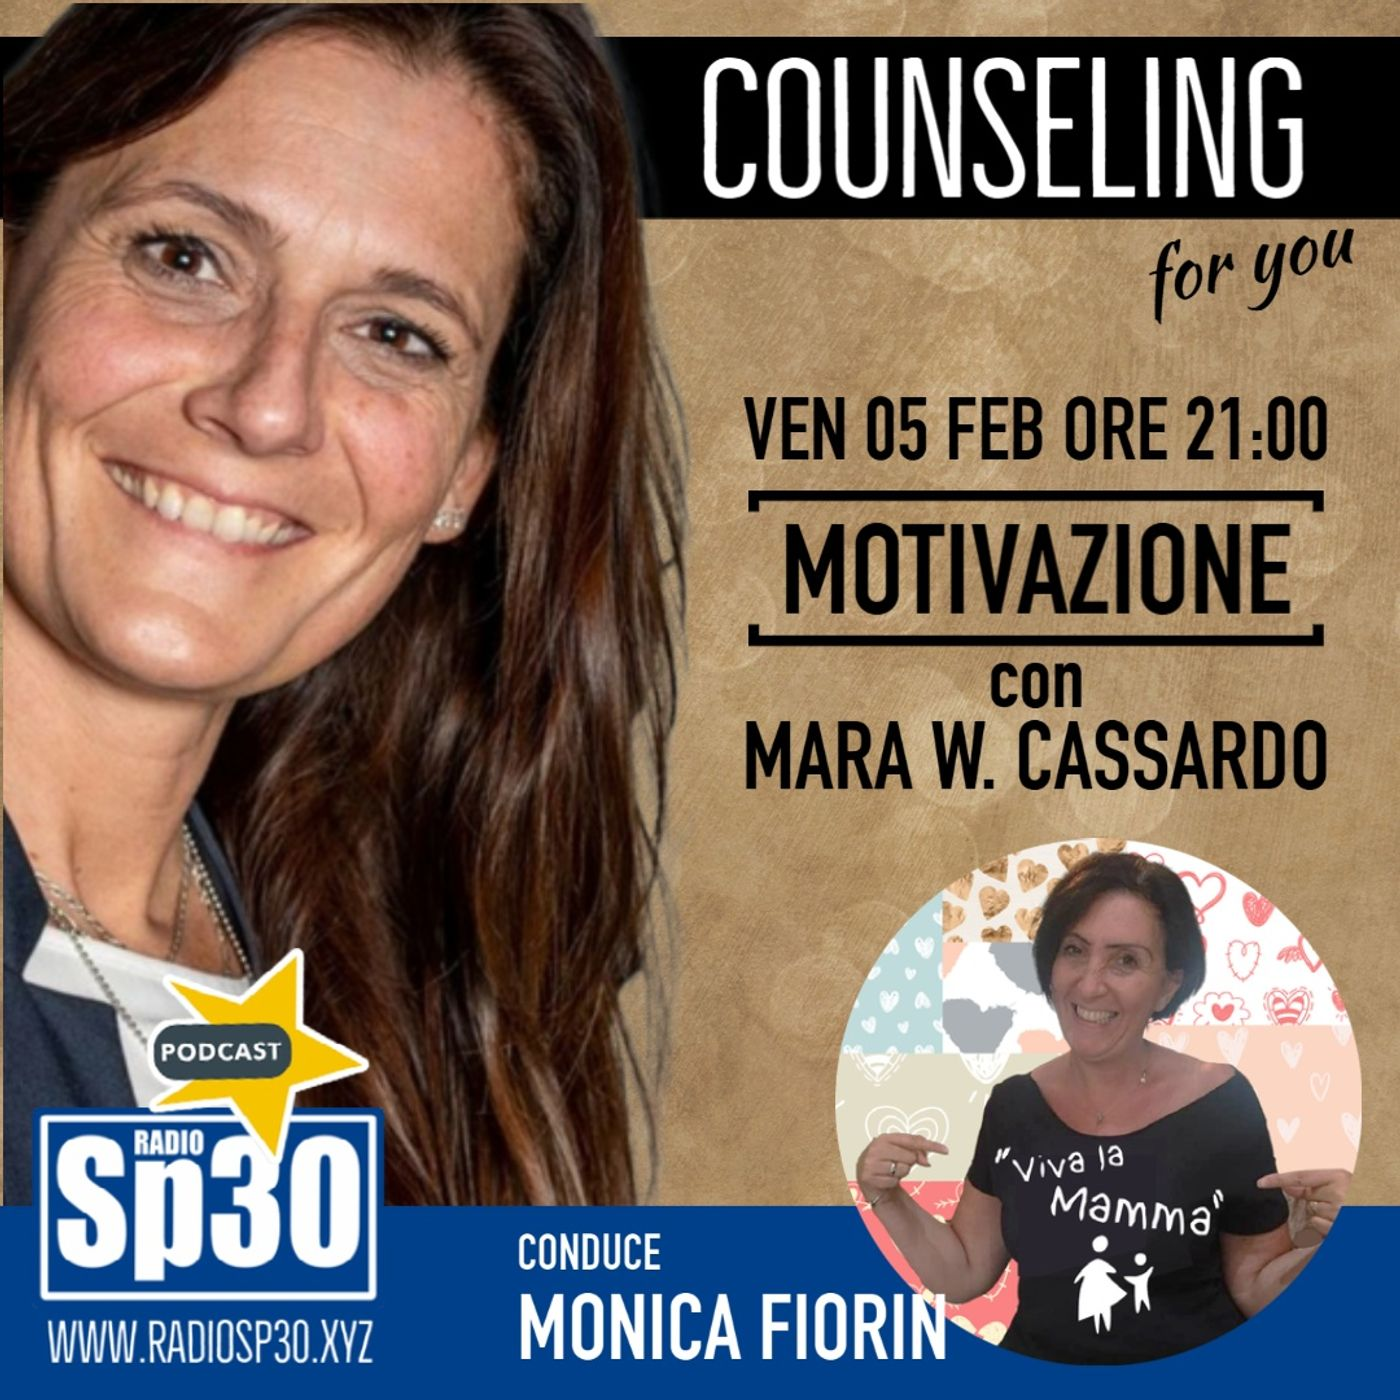 #vivalamamma - Counseling for you - Motivazione